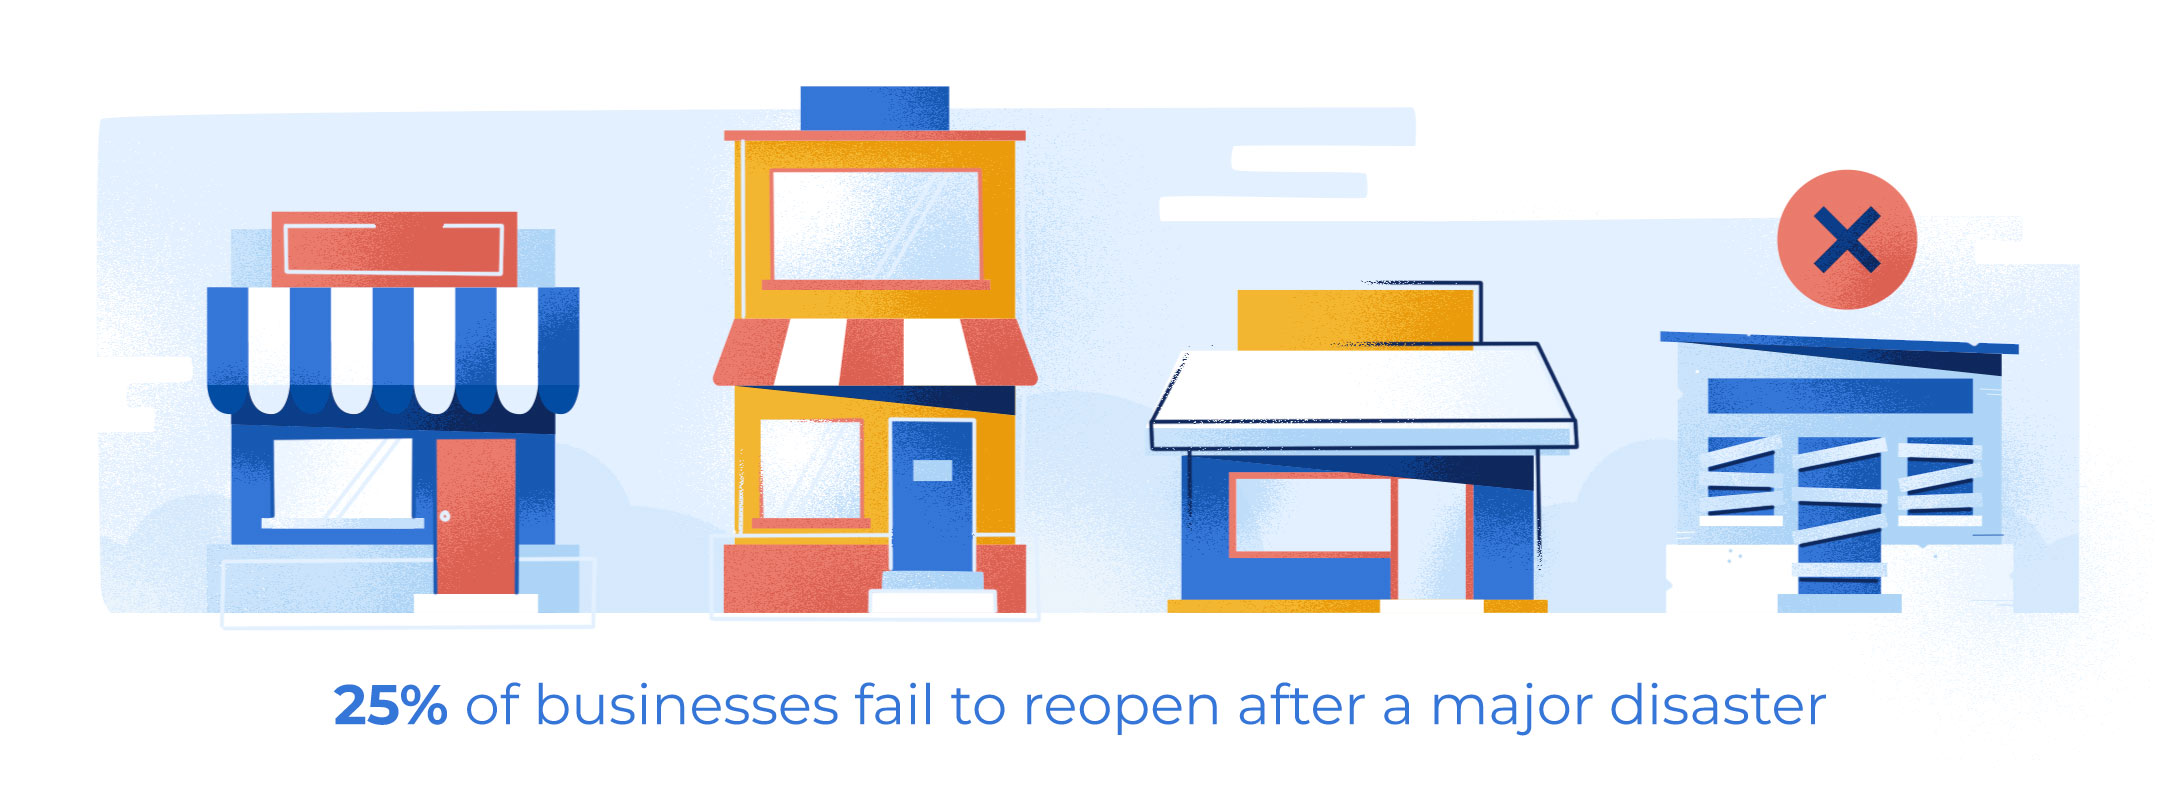 Illustration of one in four businesses fail to reopen after a major disaster